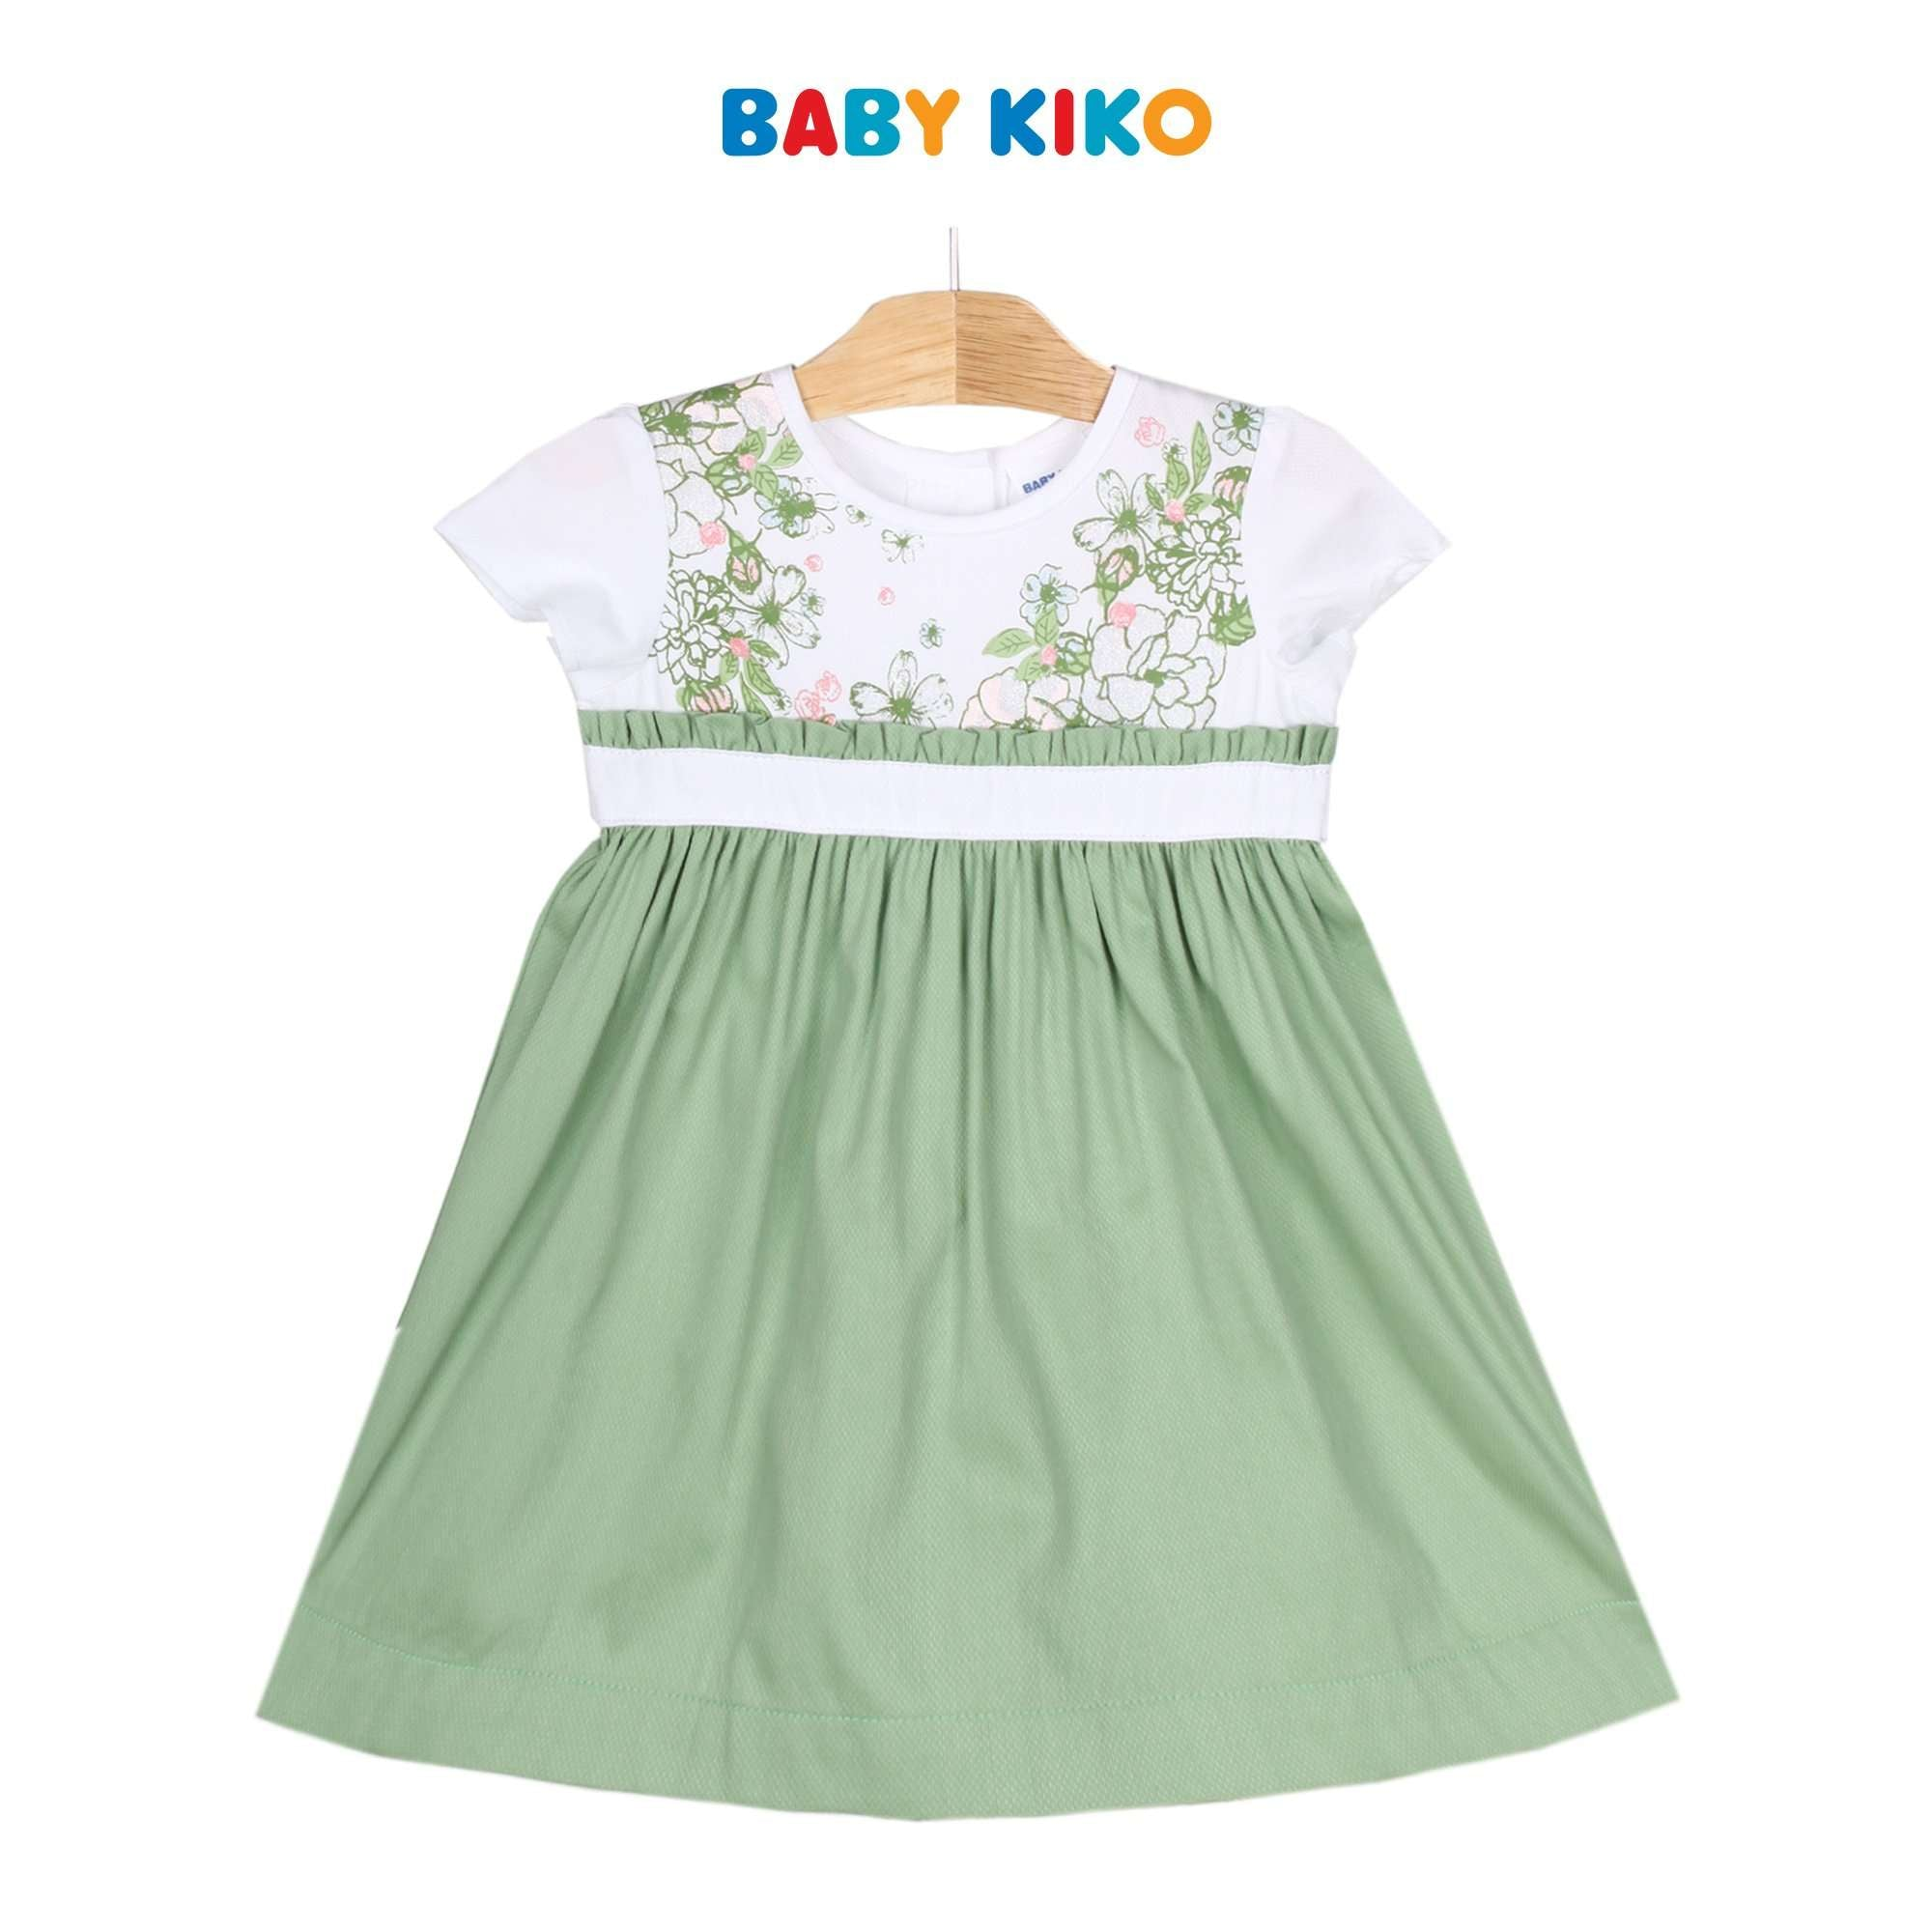 Baby KIKO Toddler Girl Short Sleeve Dress - Zephyr Green 310193-312 : Buy Baby KIKO online at CMG.MY